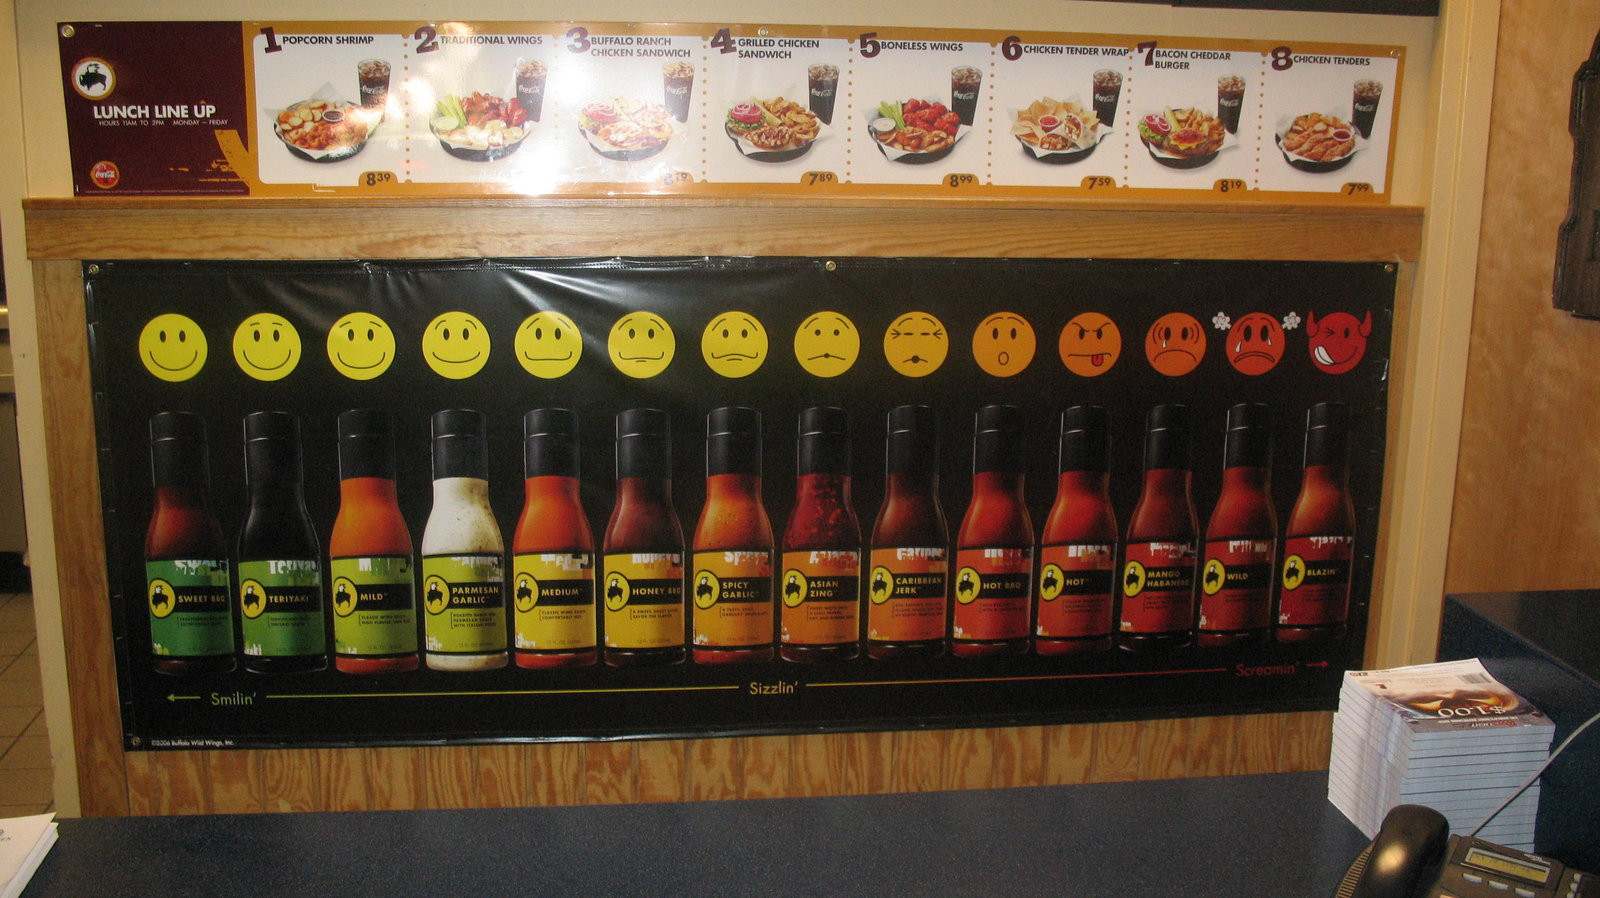 Buffalo Wild Wings Sauces  BWW s sauces by BigMac1212 on DeviantArt